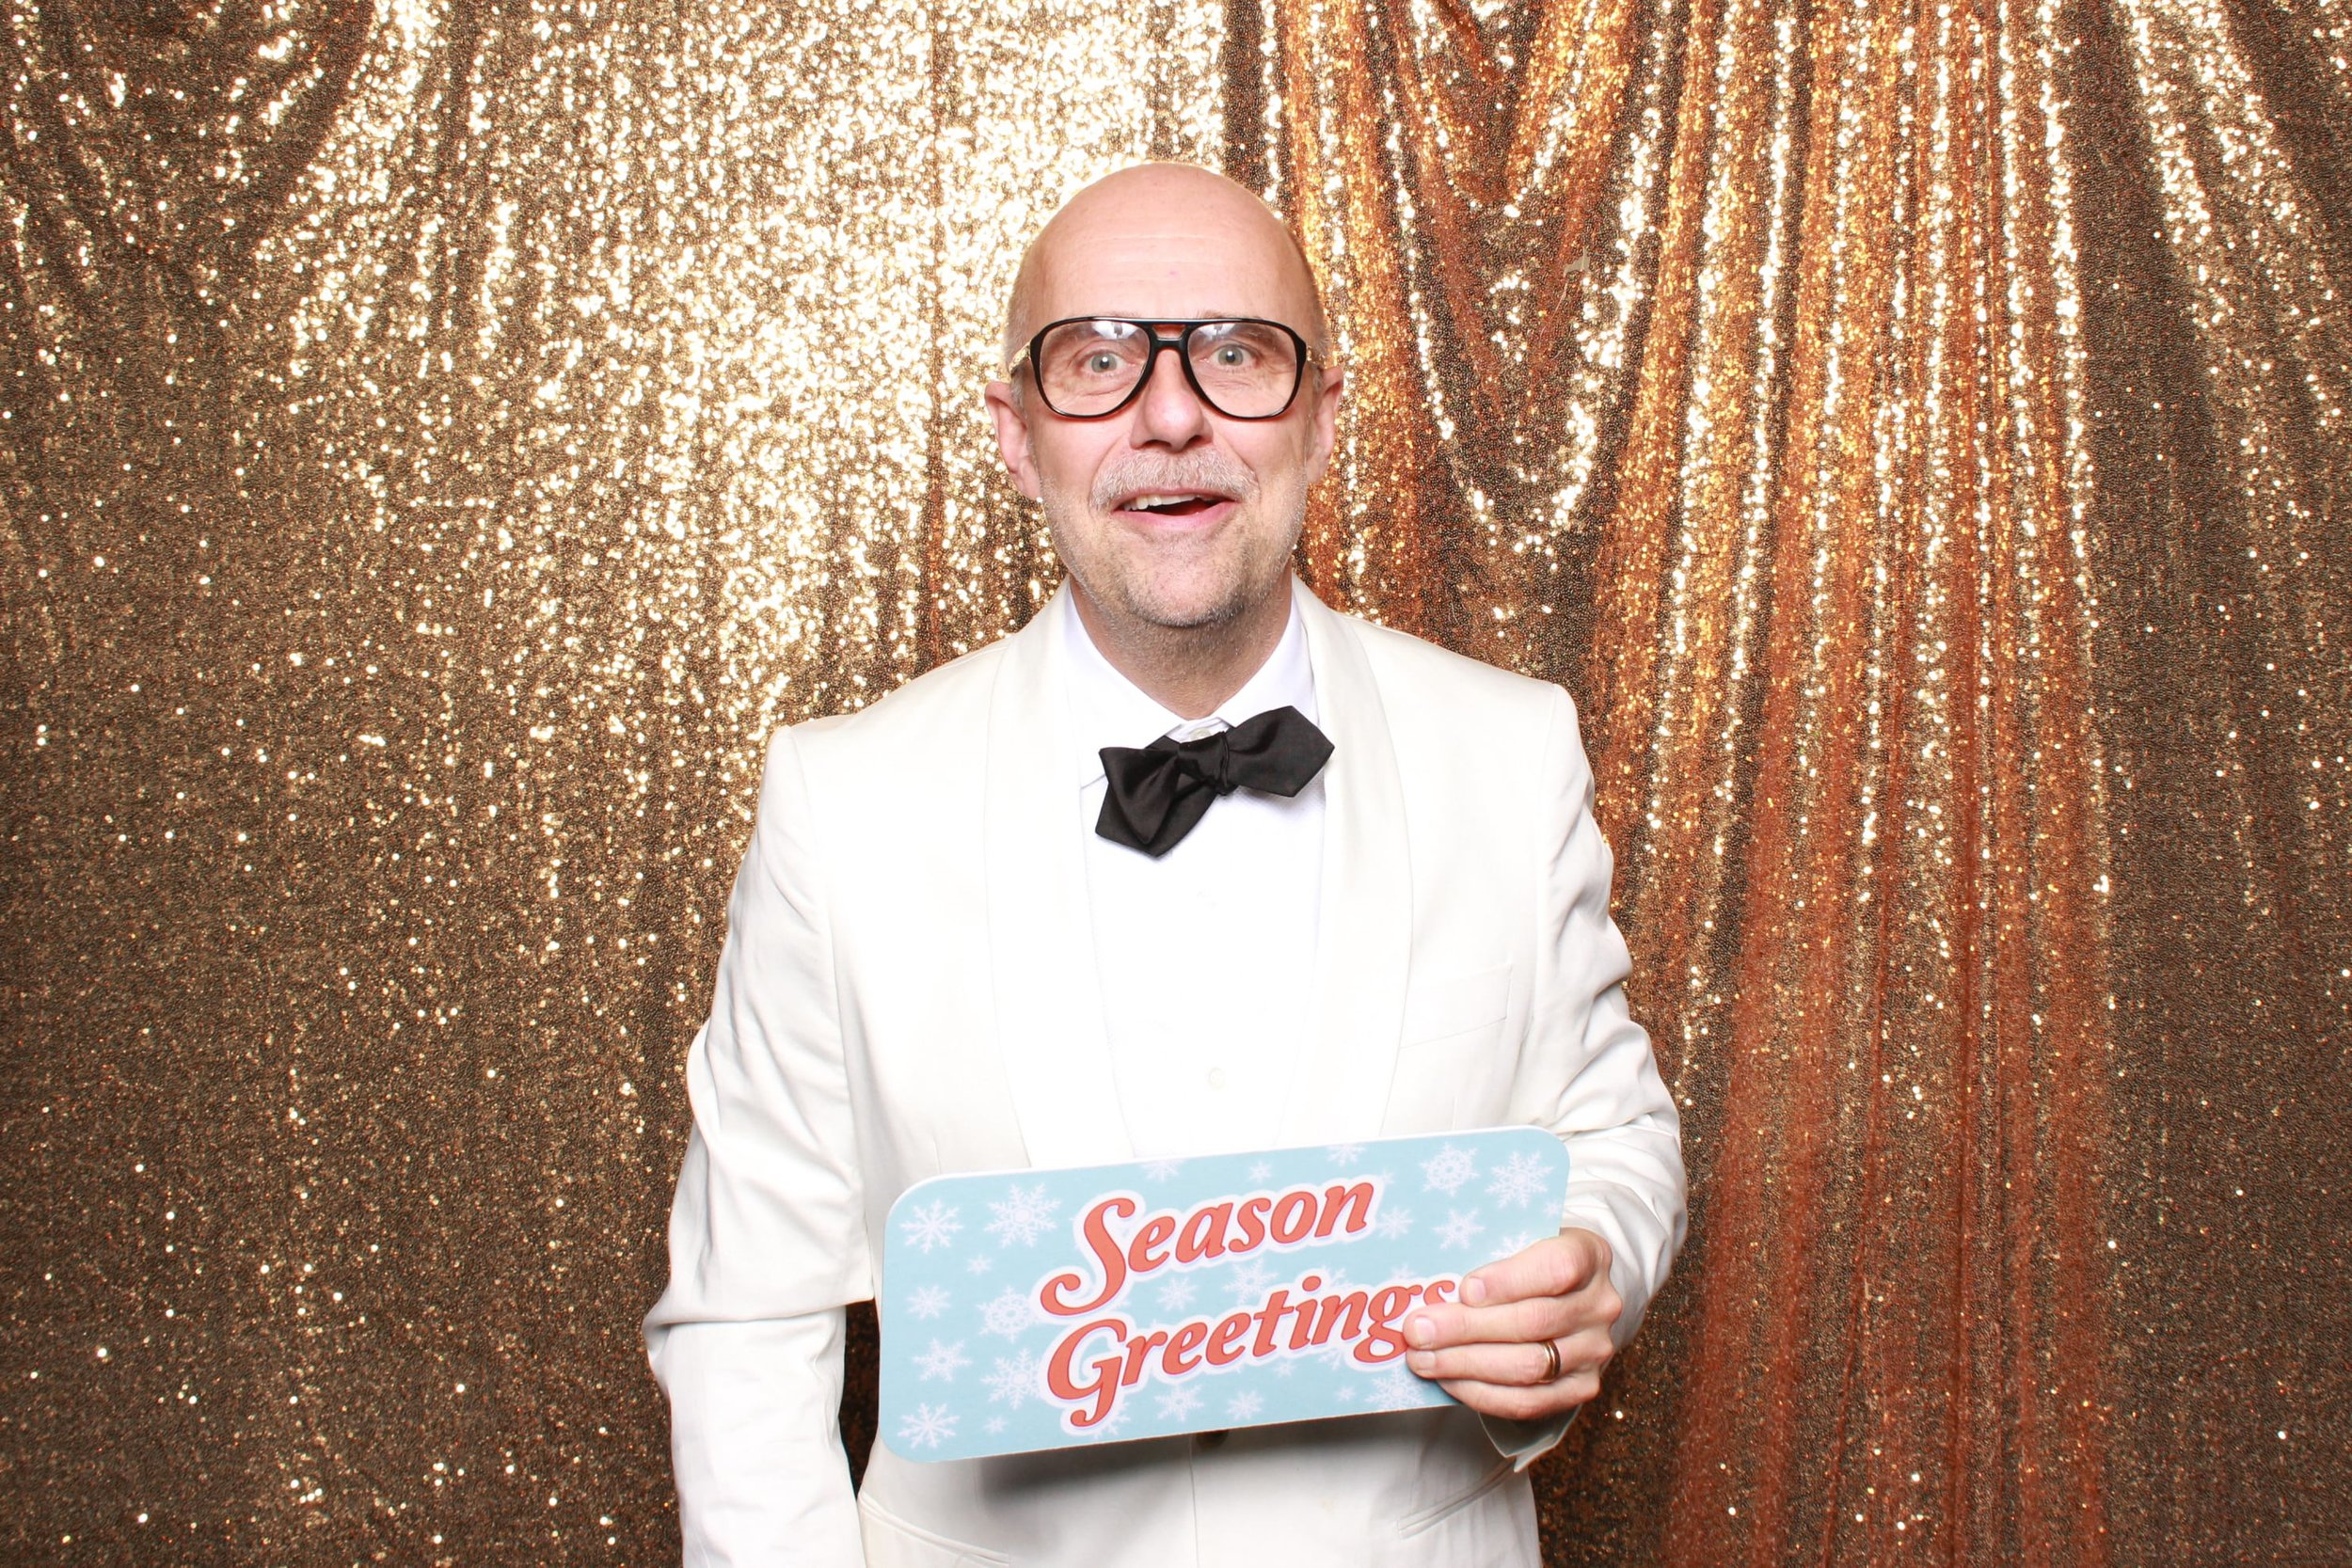 Photo Booth Rental Springfield Township New Jersey.jpg